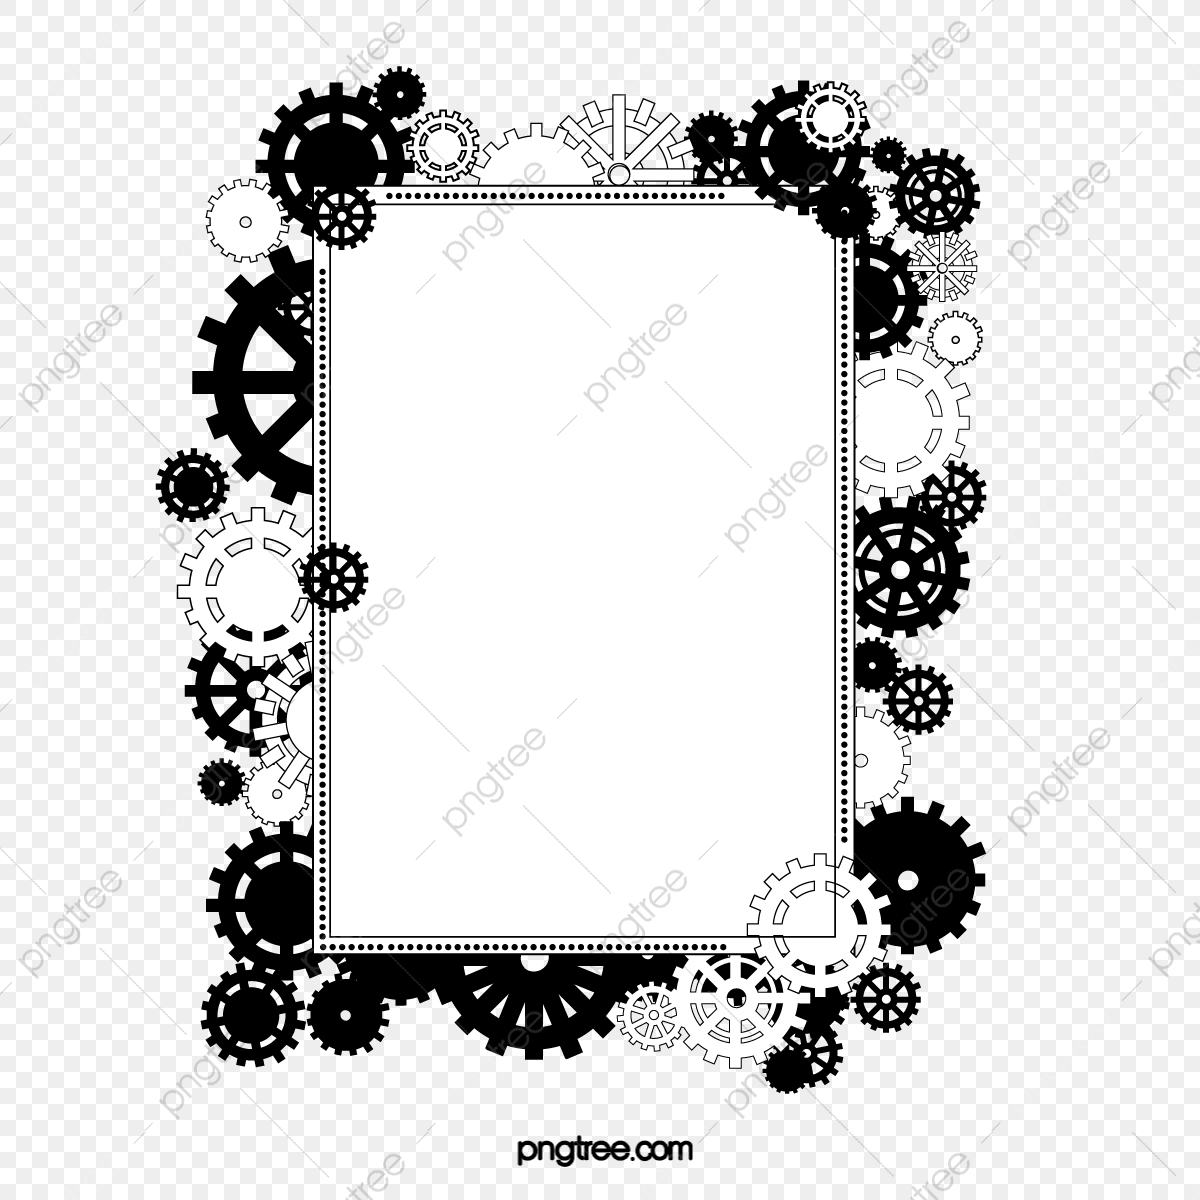 Black and white . Gear clipart gear frame